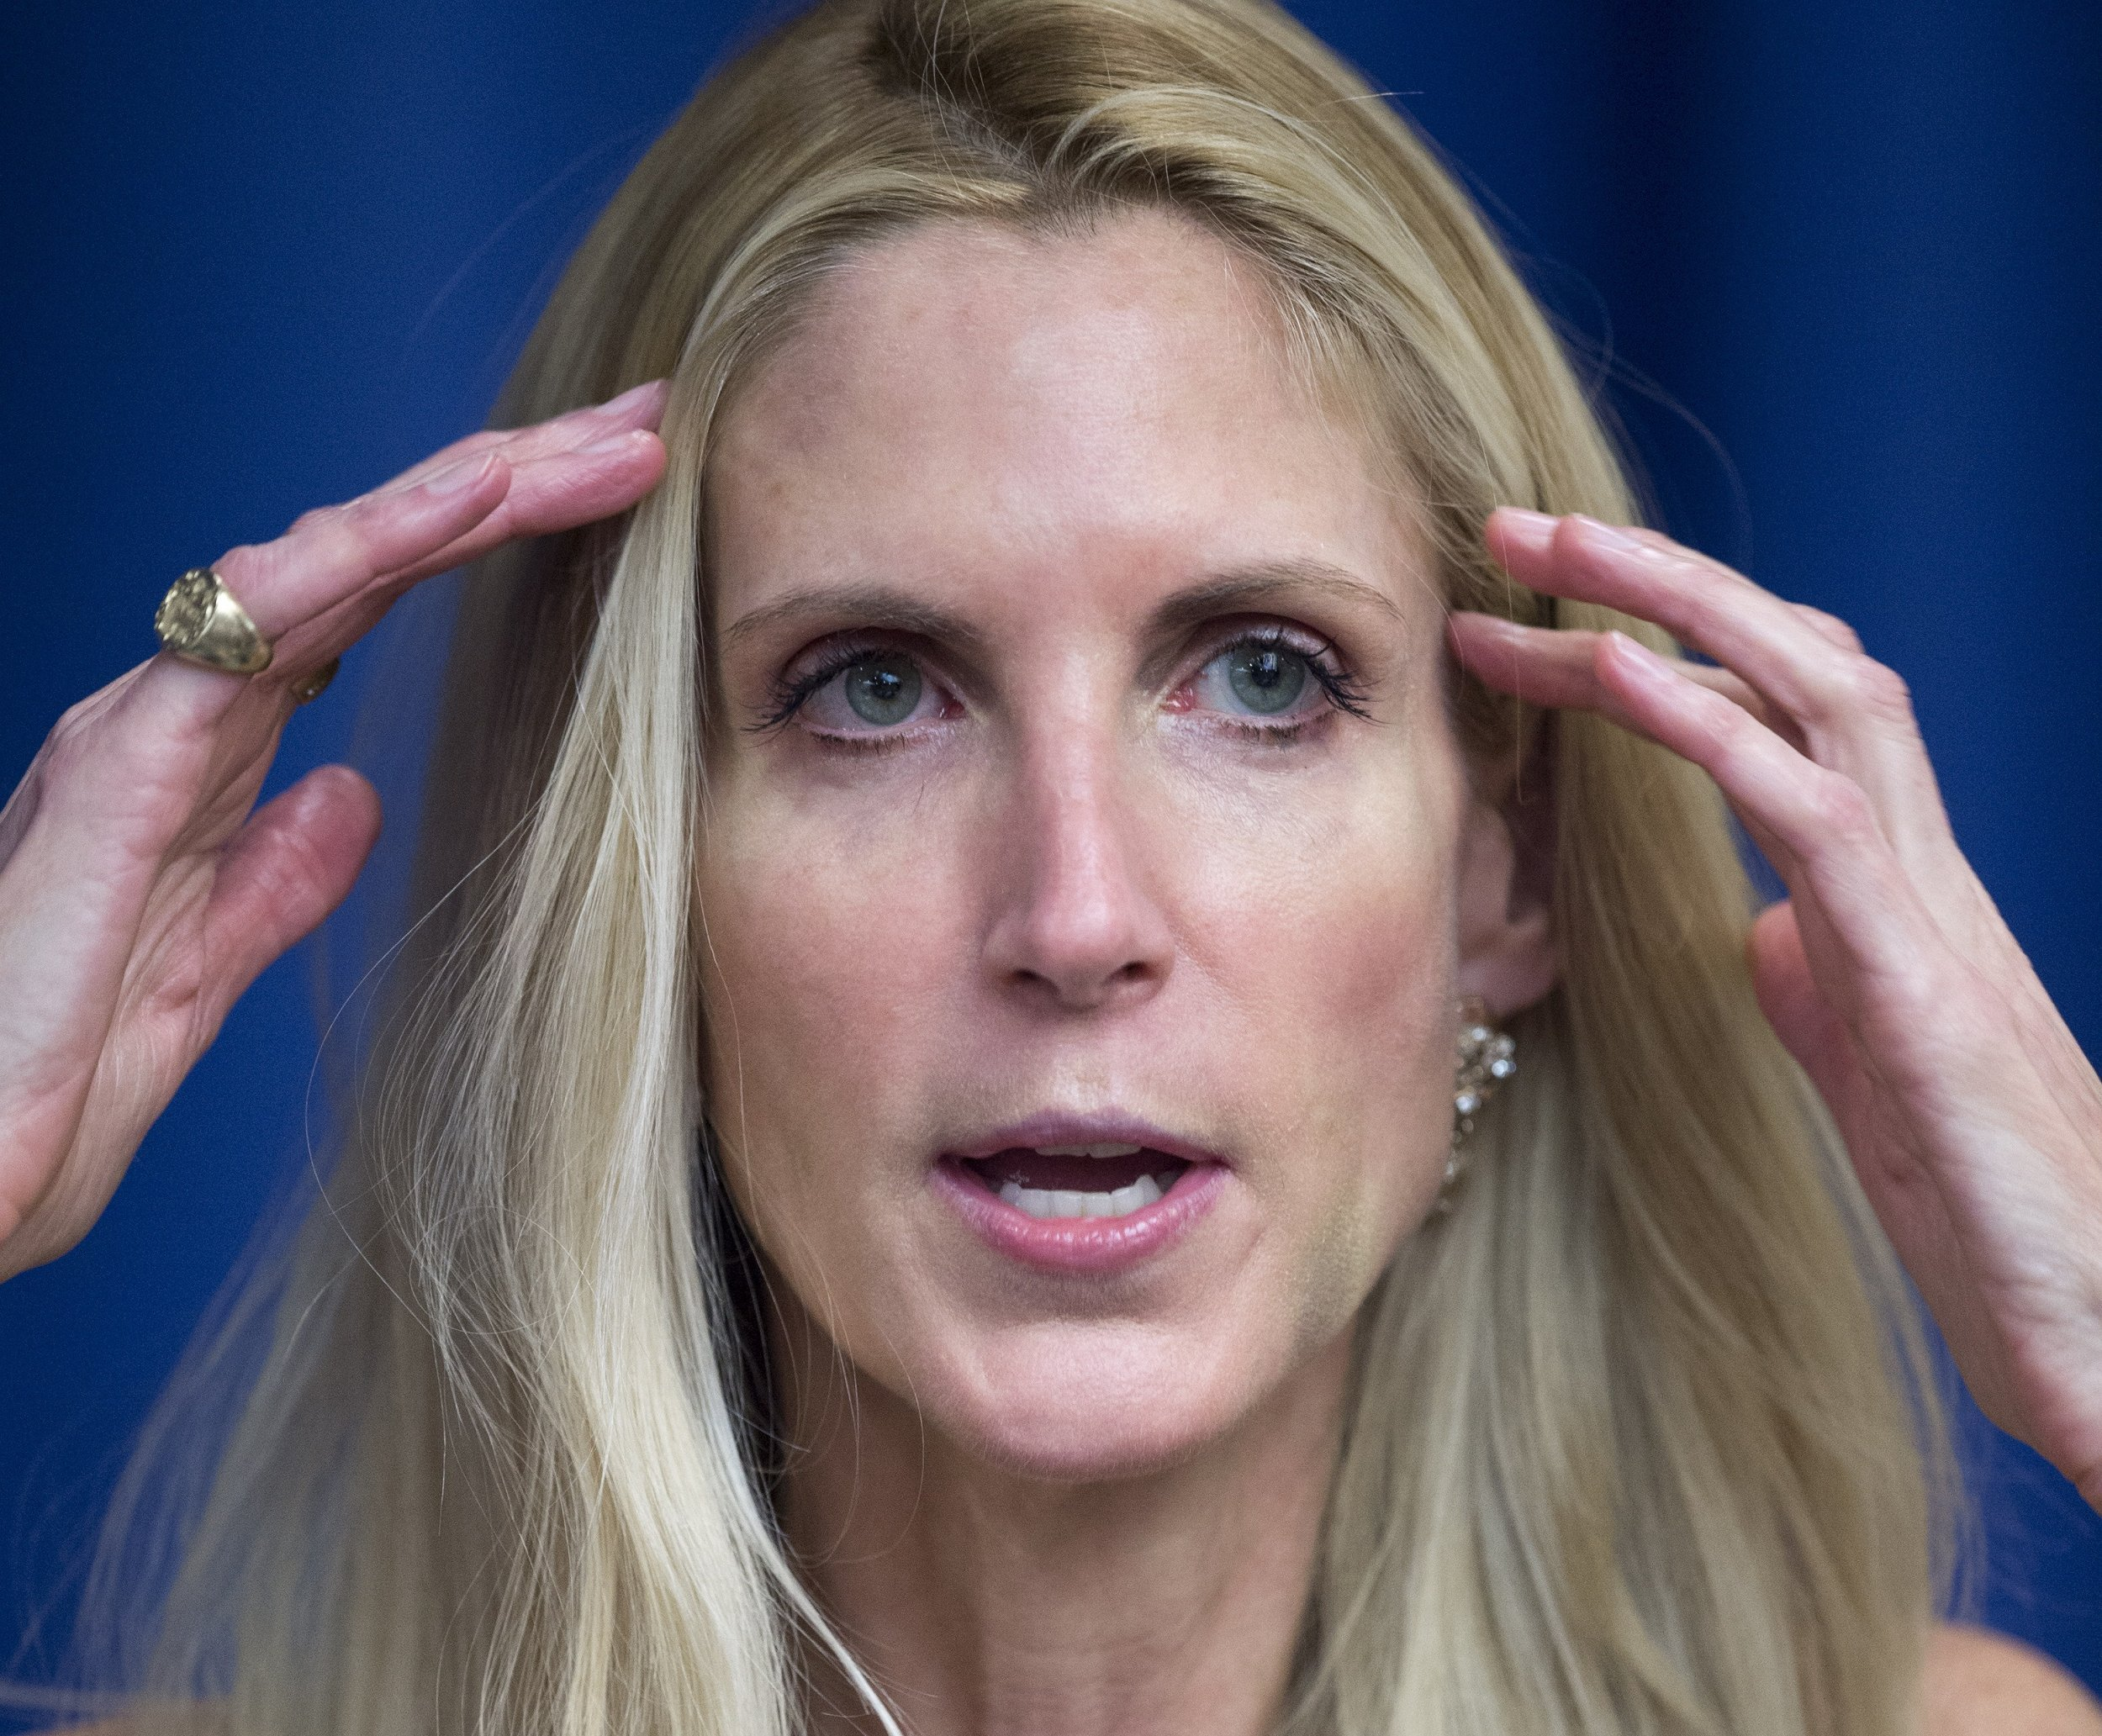 Ann Coulter proposes shooting immigrants trying to cross U.S. border illegally following Gaza protests